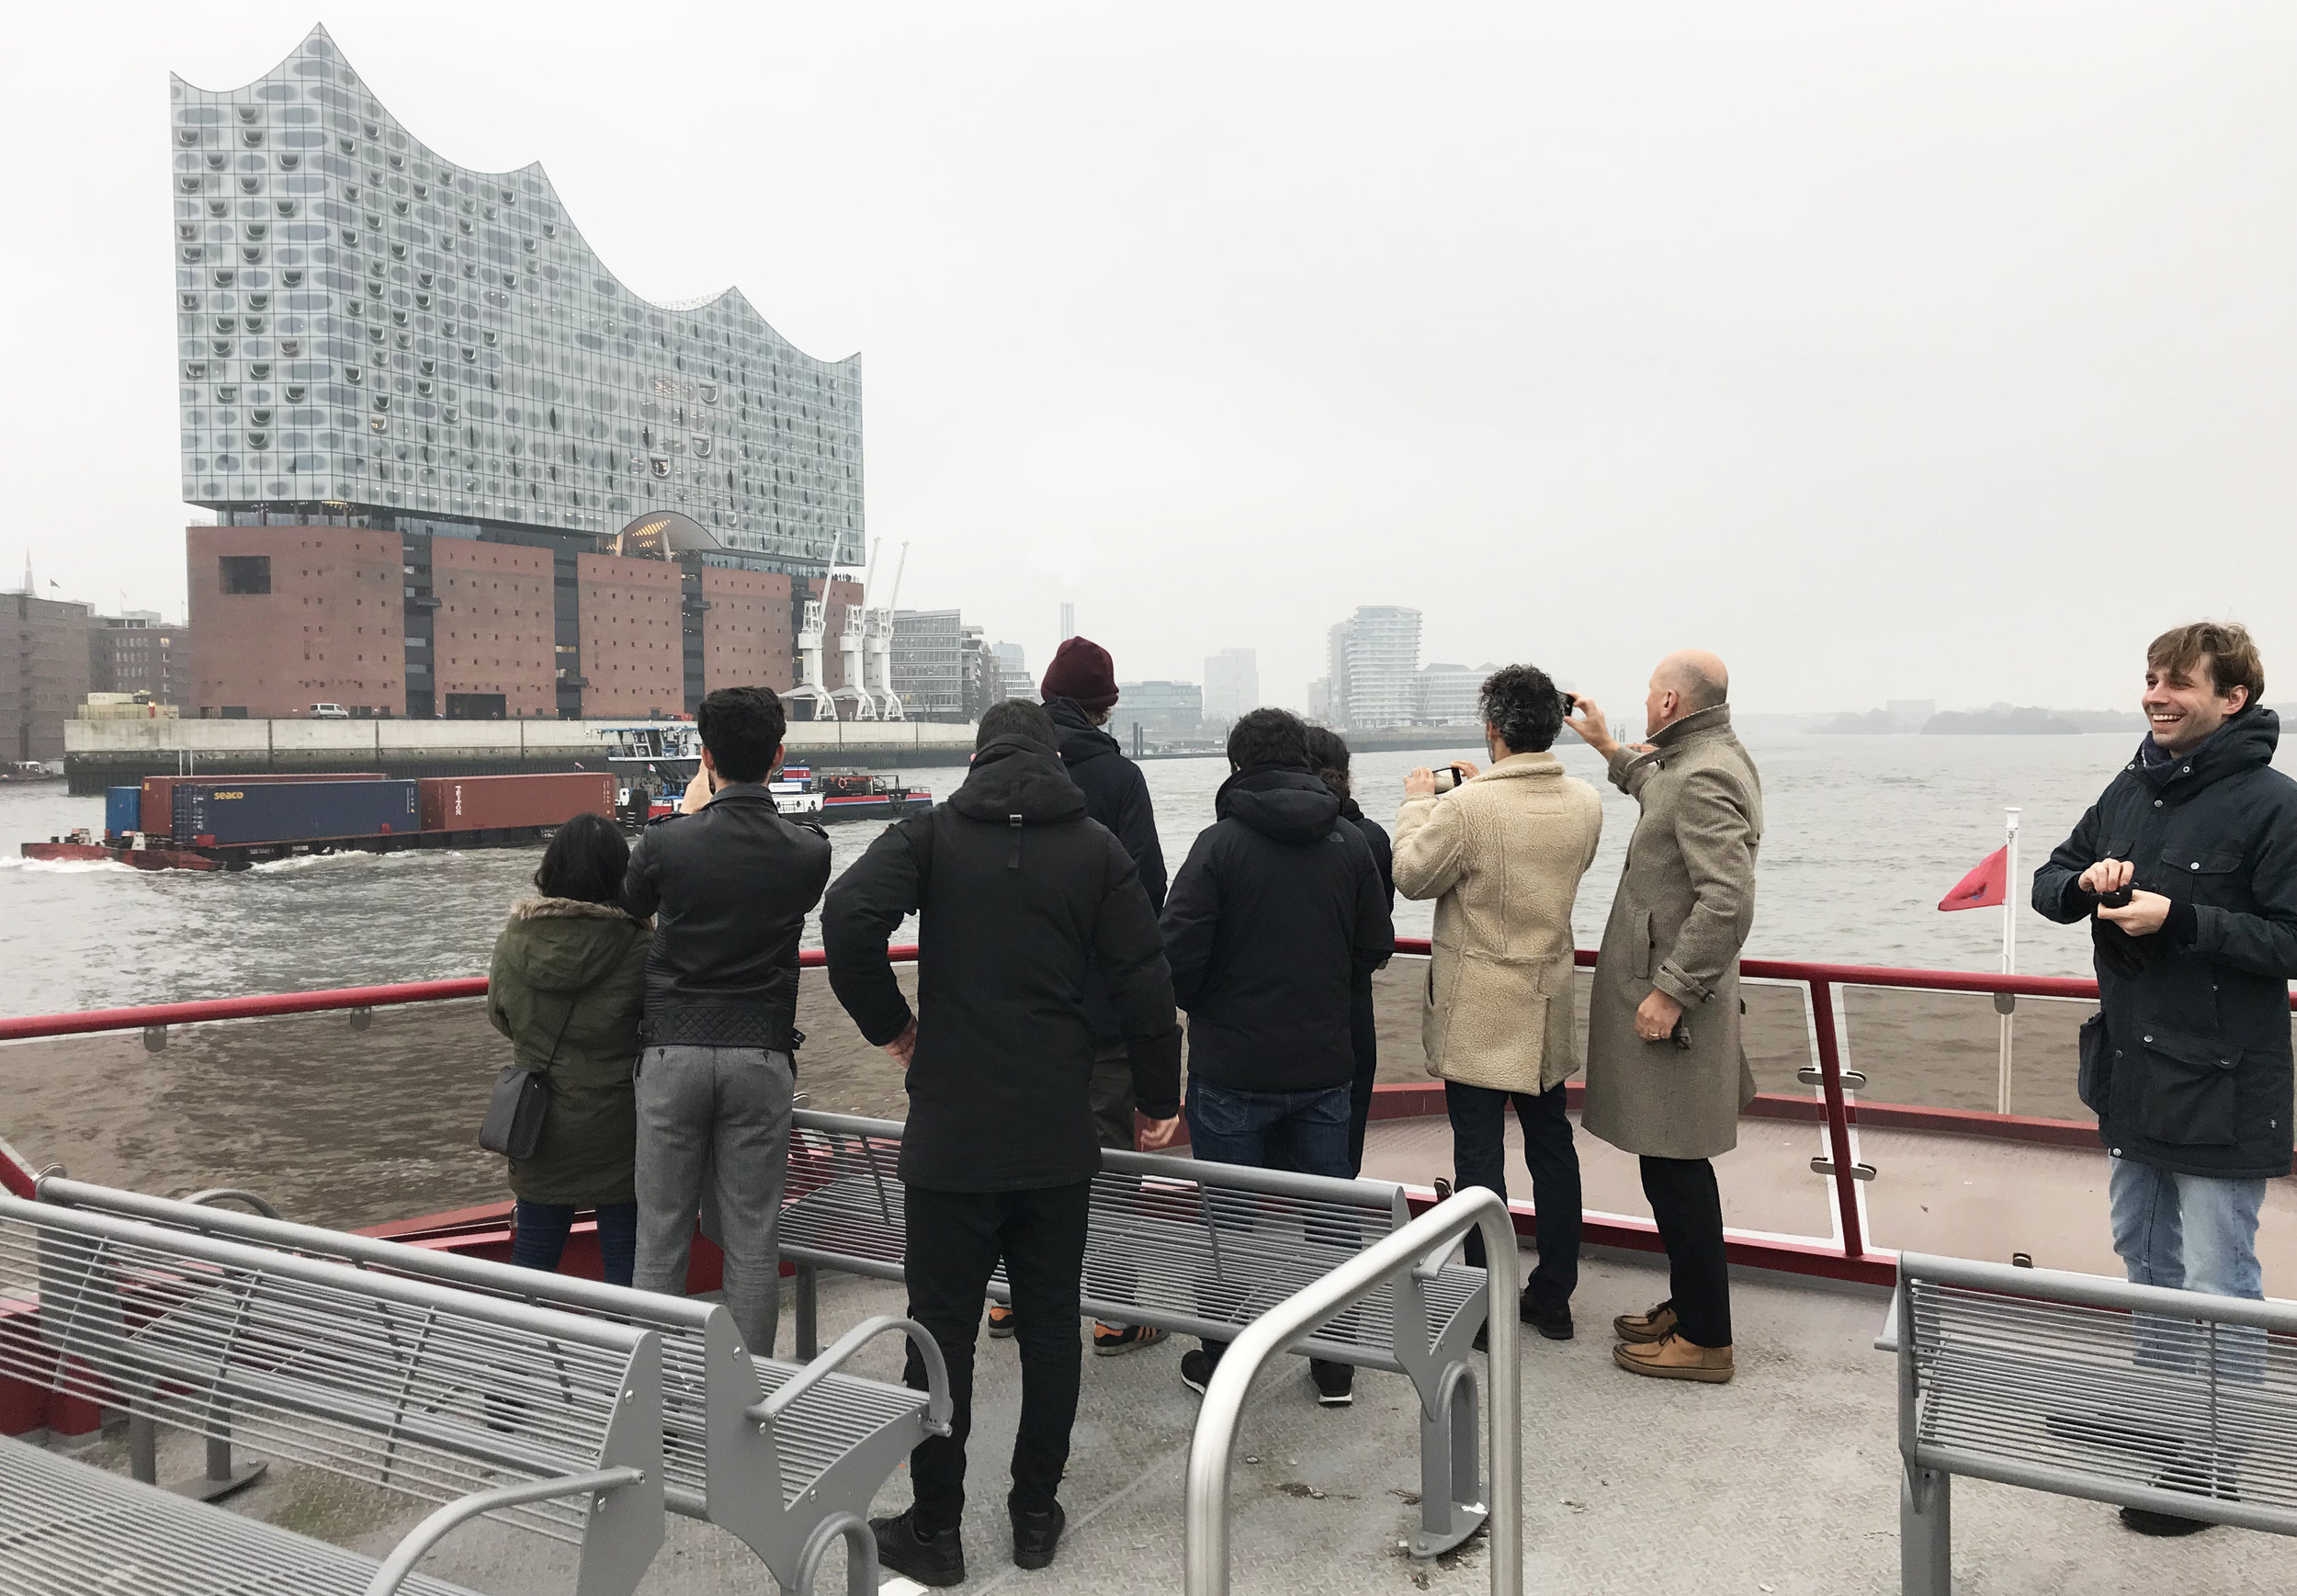 """Daniel:  """"We also went on a boat ride across the Elbe river back to our hotel, and that is really where the building shines! Sailing past the hotel, it seemed to tell a story through revealing its attractive angles."""""""